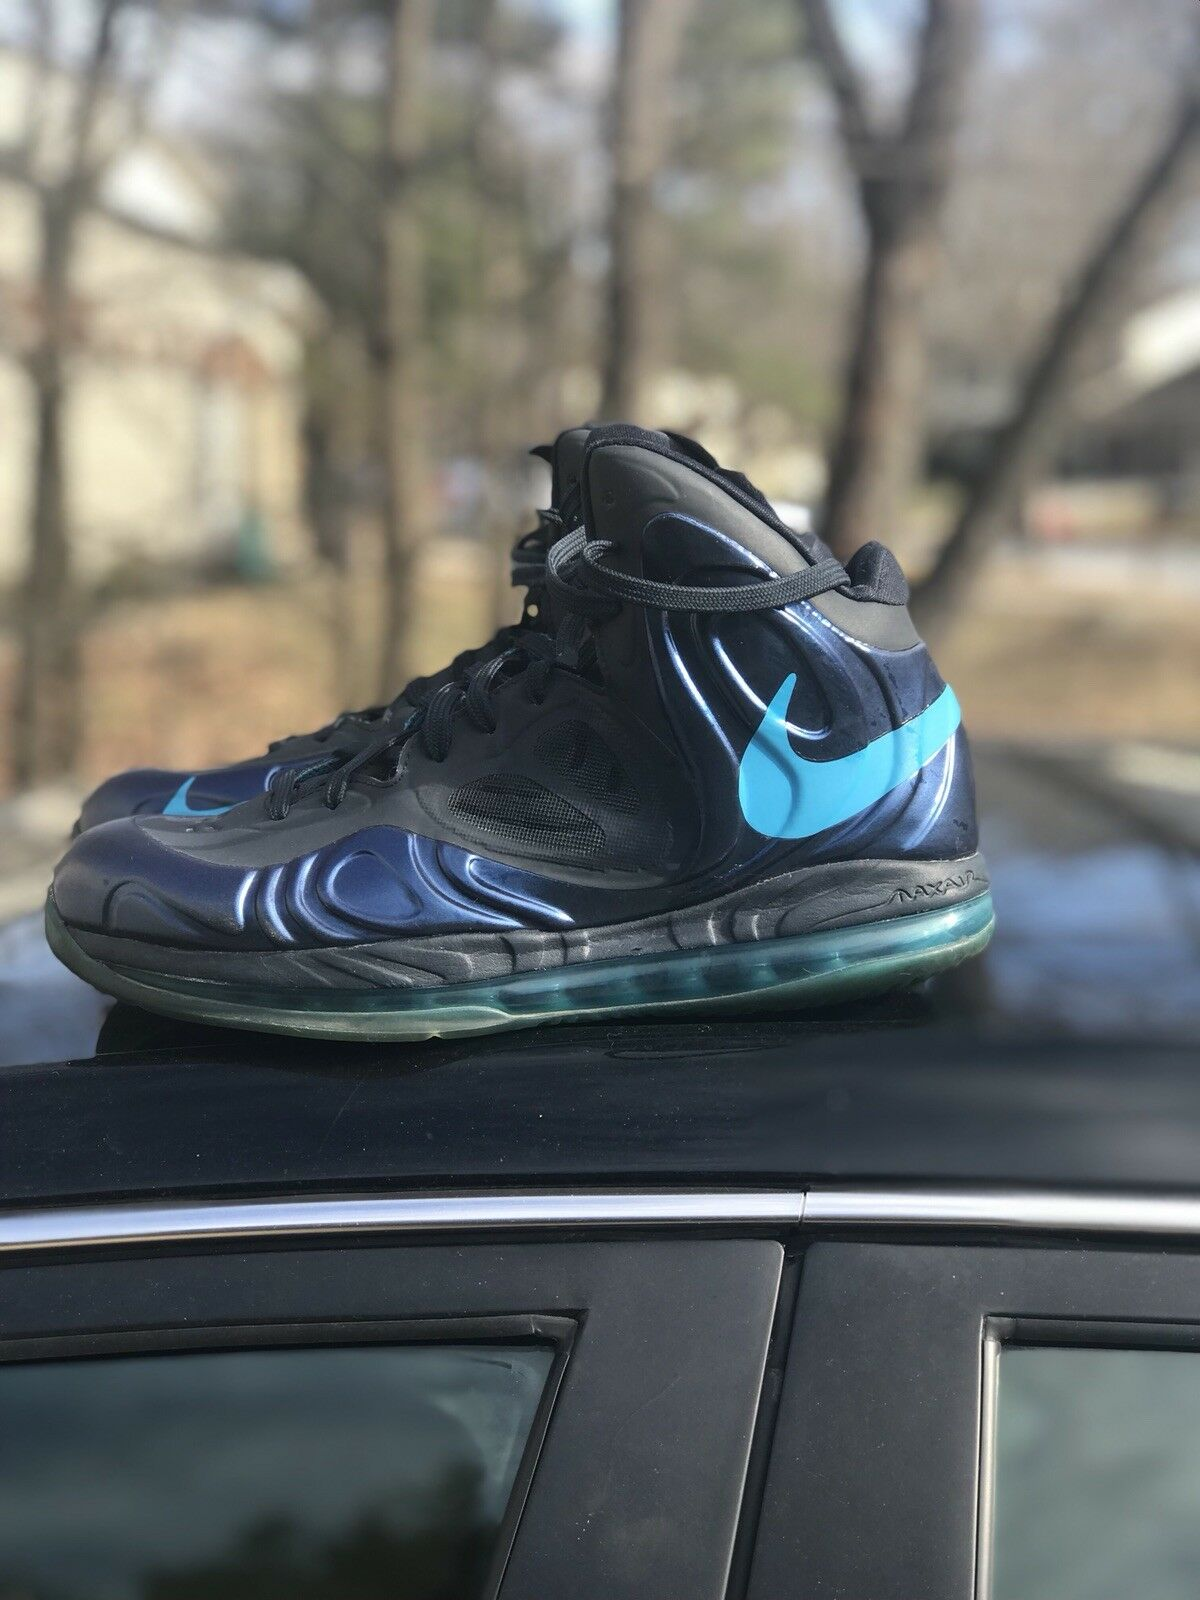 Nike Air Max Hyperposite Obsidian Blue Basketball Shoes U.S. Men's Size 10